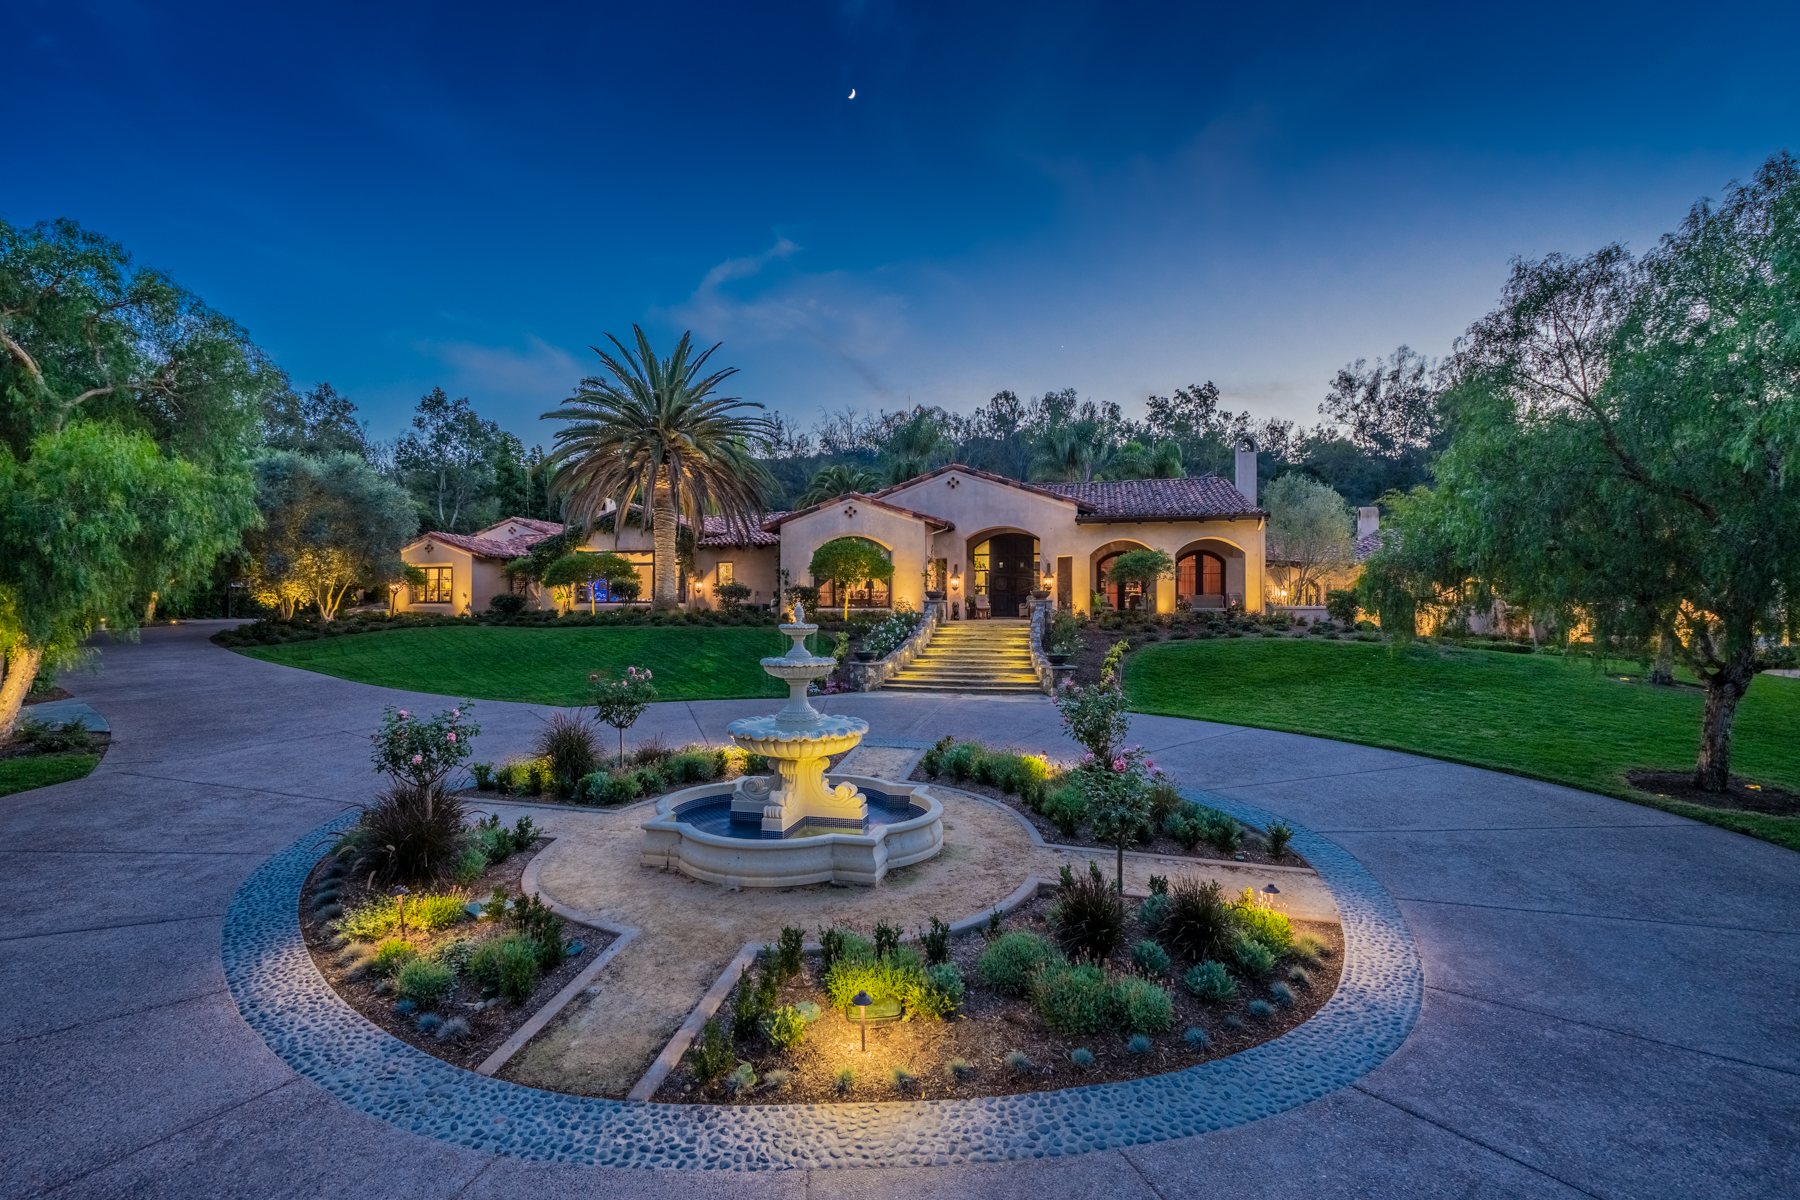 Single Family Home for Sale at 16250 Rambla De Las Flores Rancho Santa Fe, California, 92067 United States